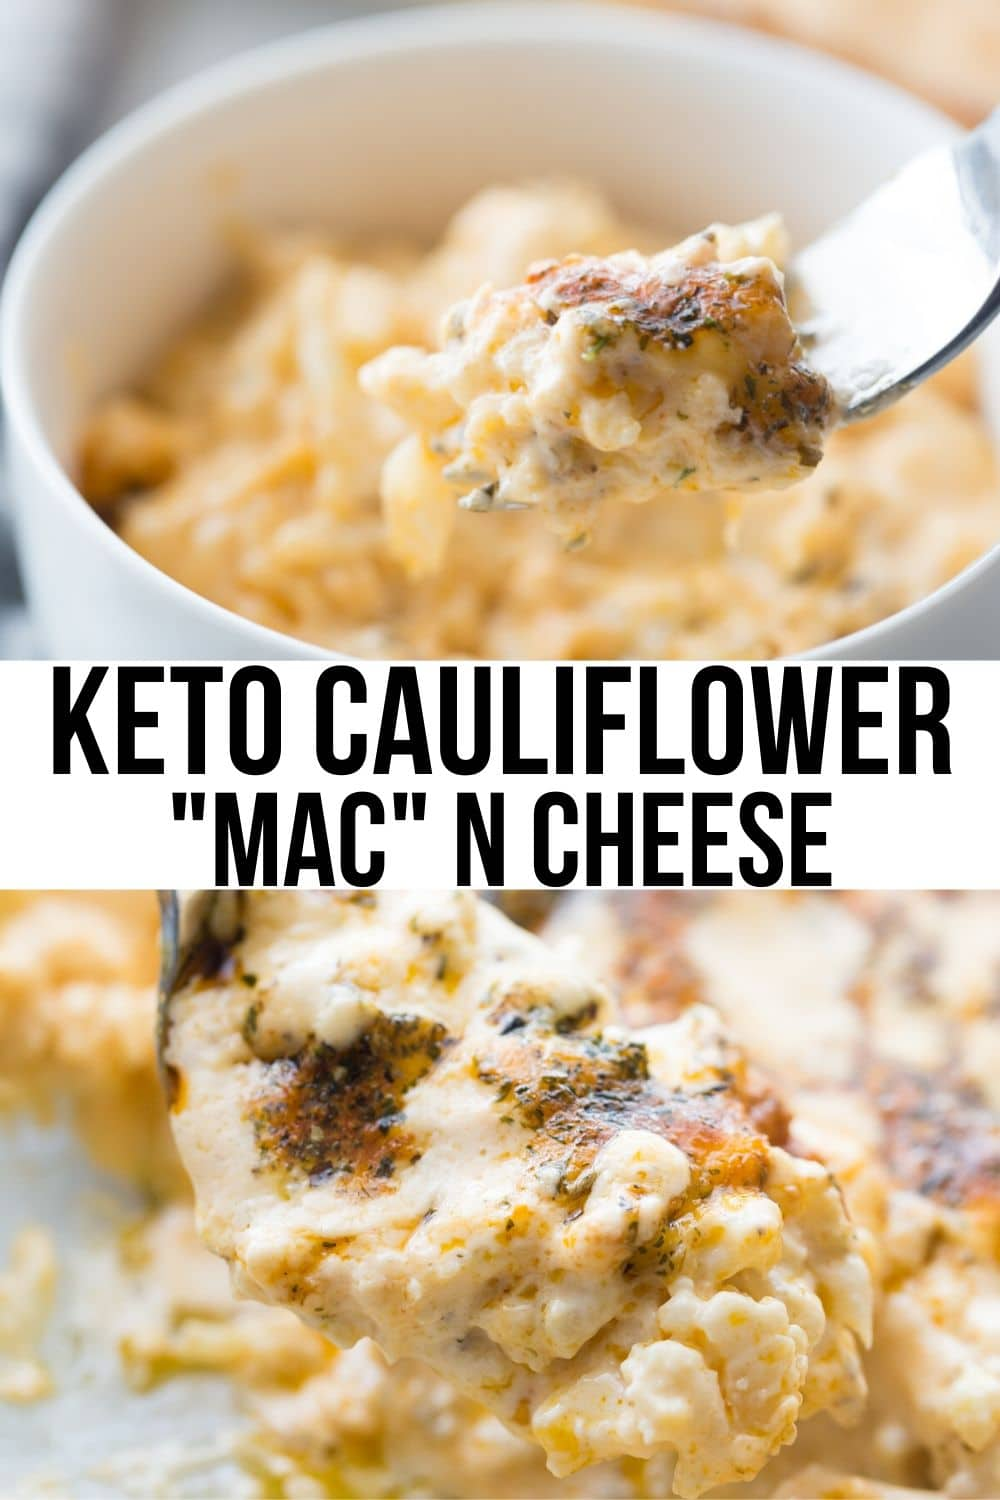 macaroni,cauliflower and cheese in a bowl collage image